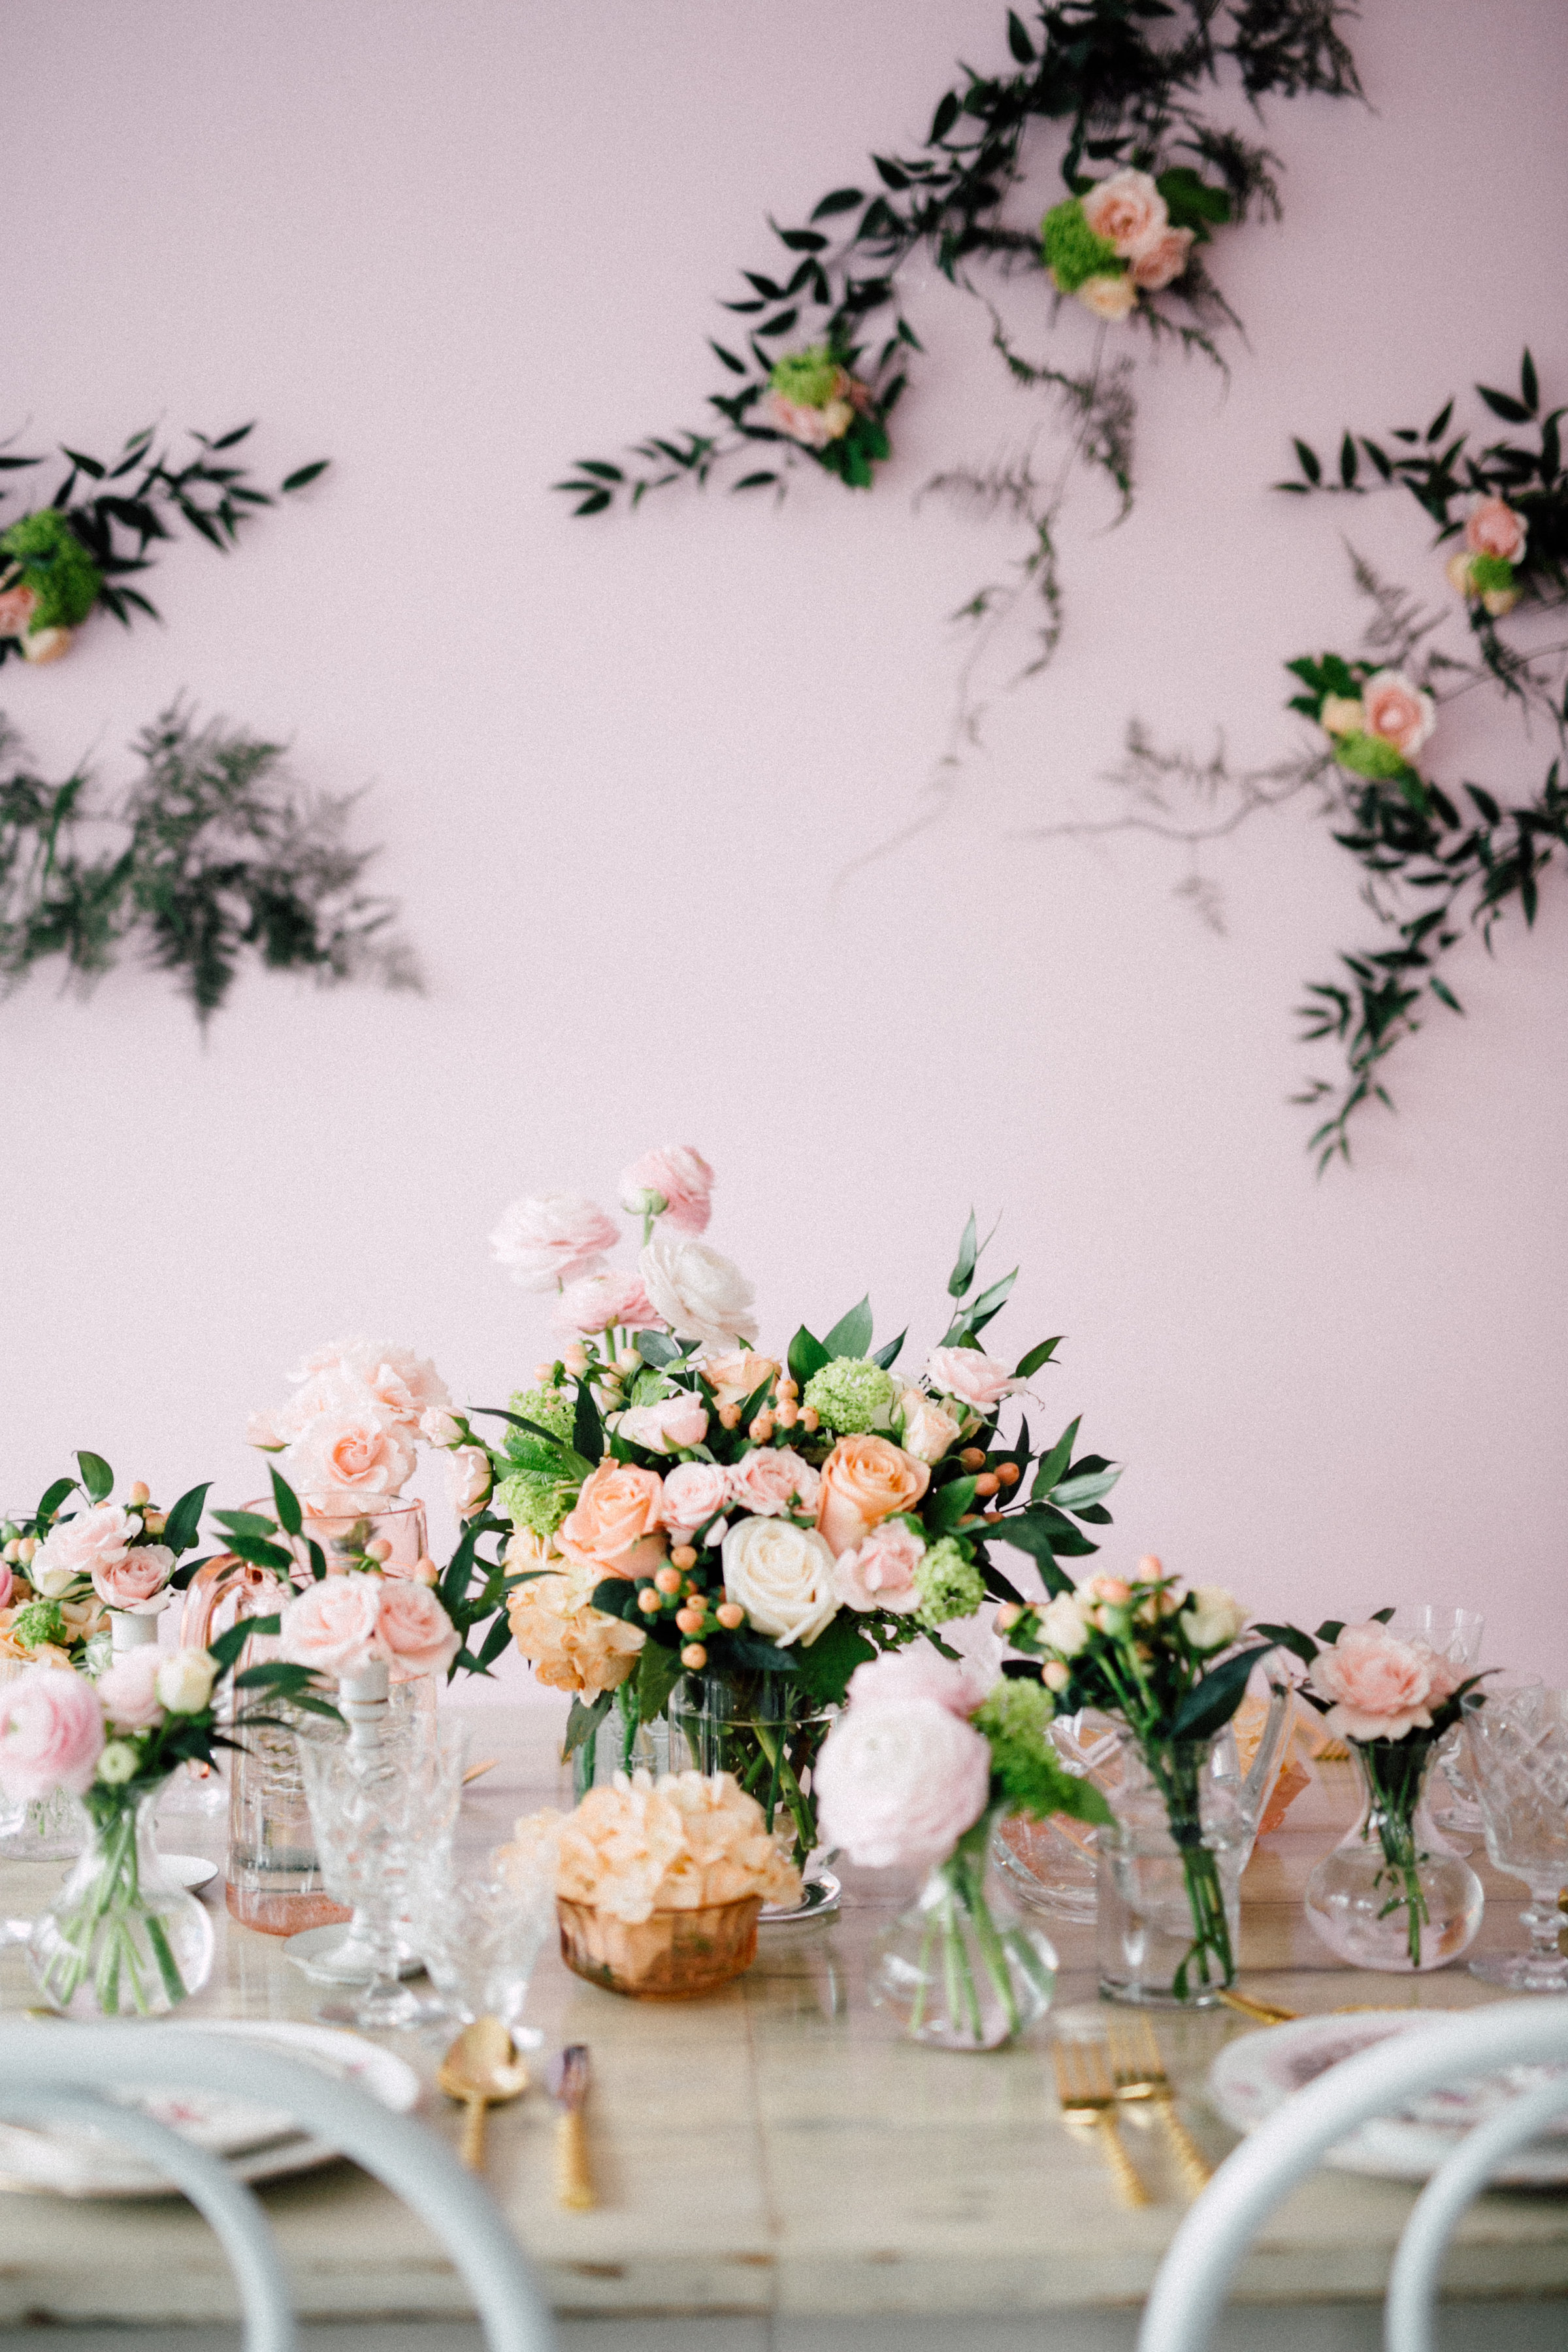 August In Bloom - Baby Shower Pink-Accented Table And Background - Bun In The Oven